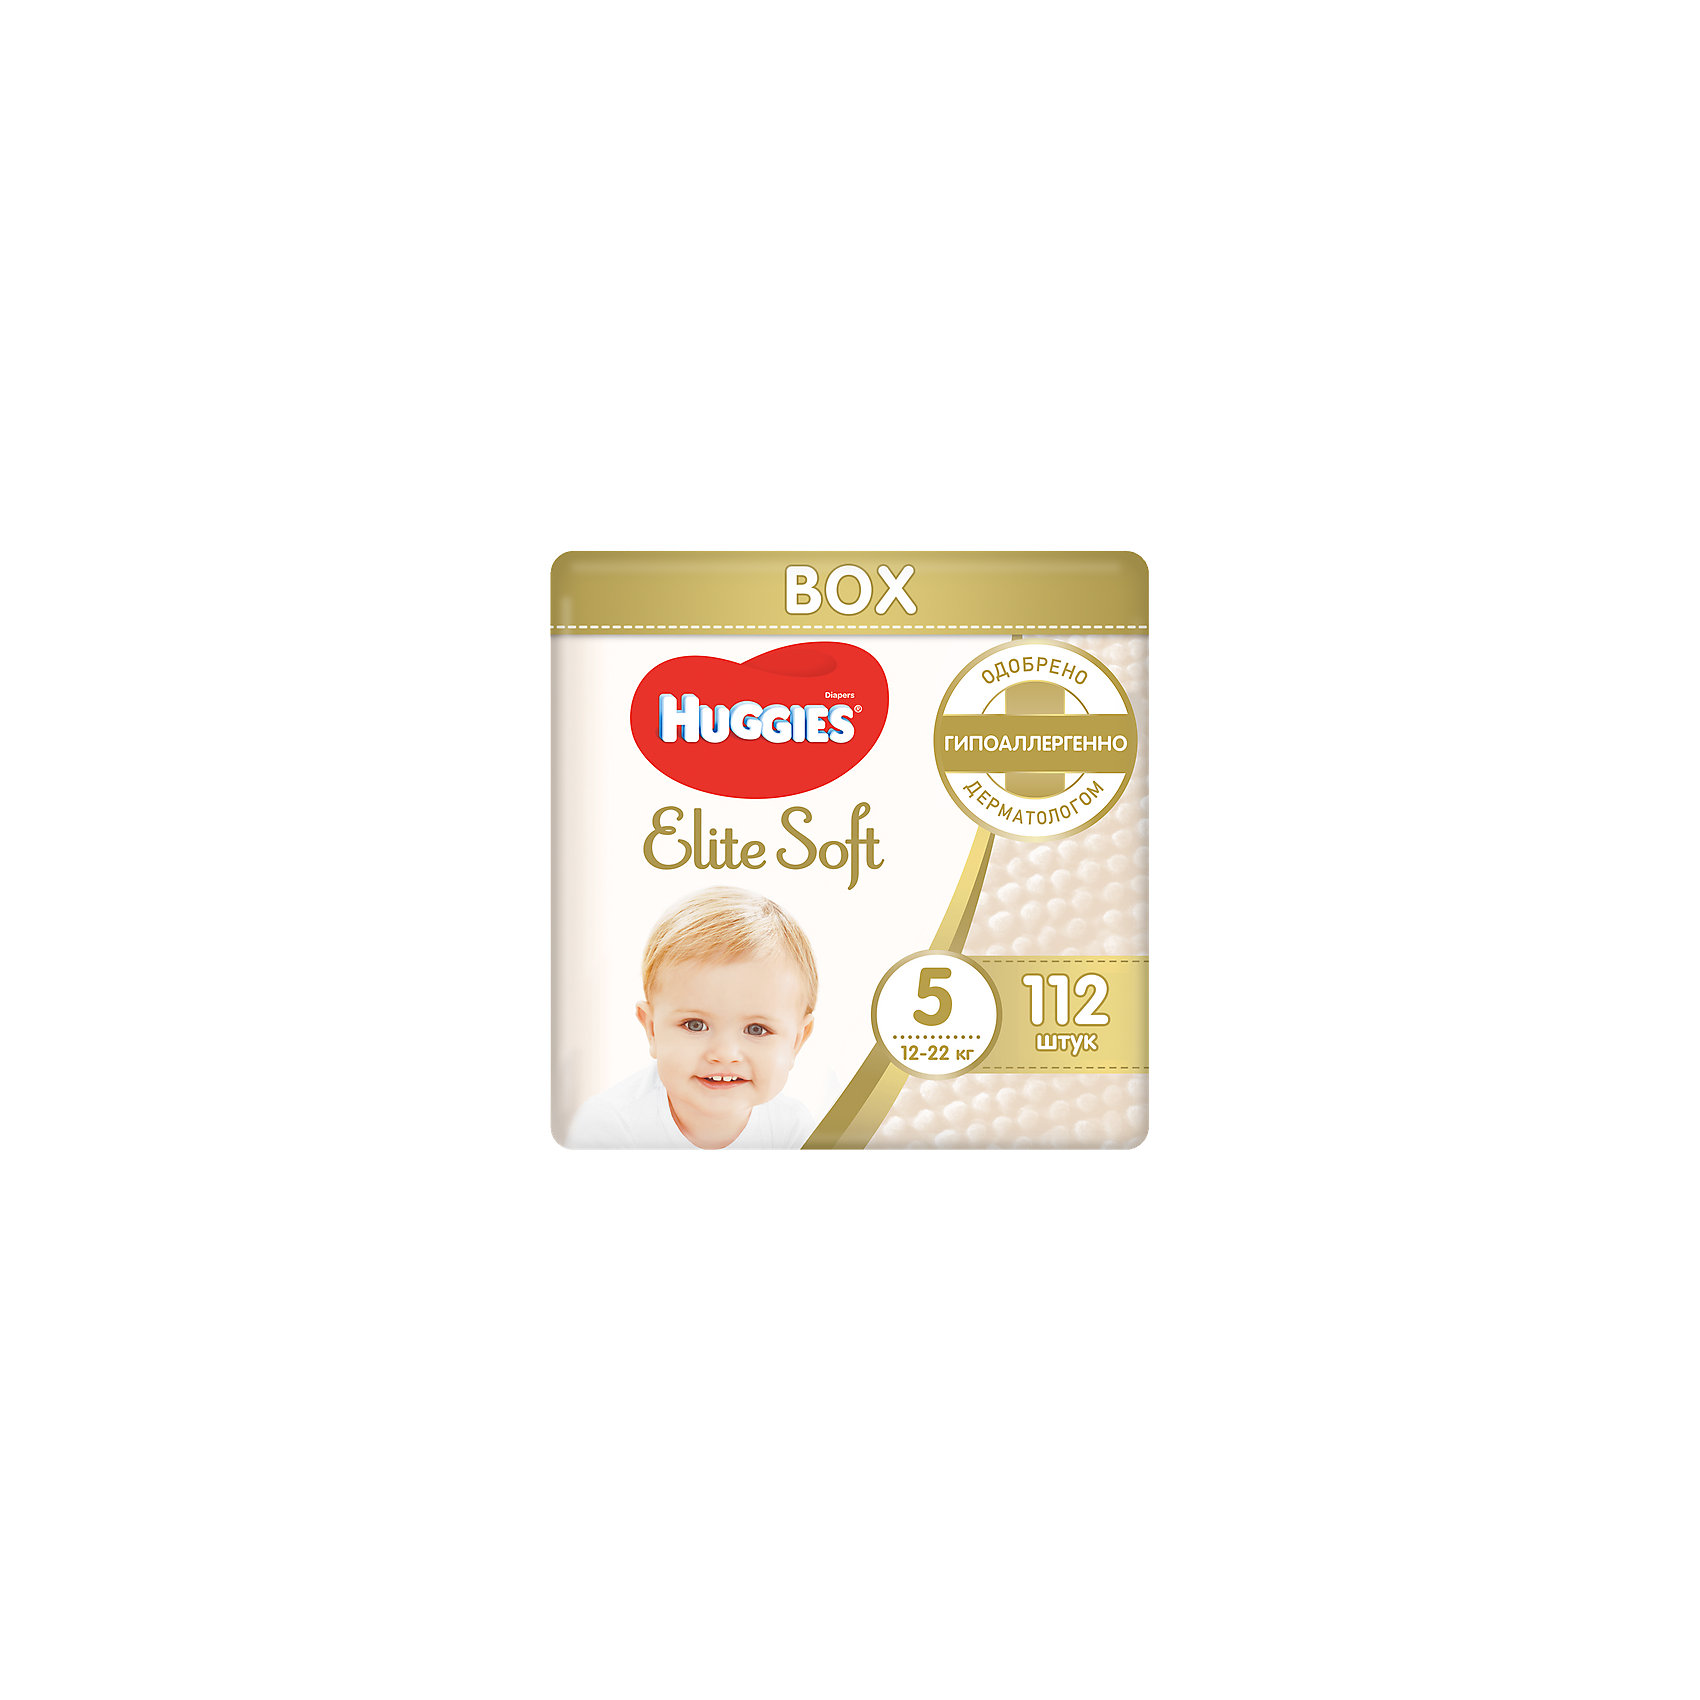 ���������� Elite Soft 5, 12-22 ��, 112 ��., Huggies (HUGGIES)